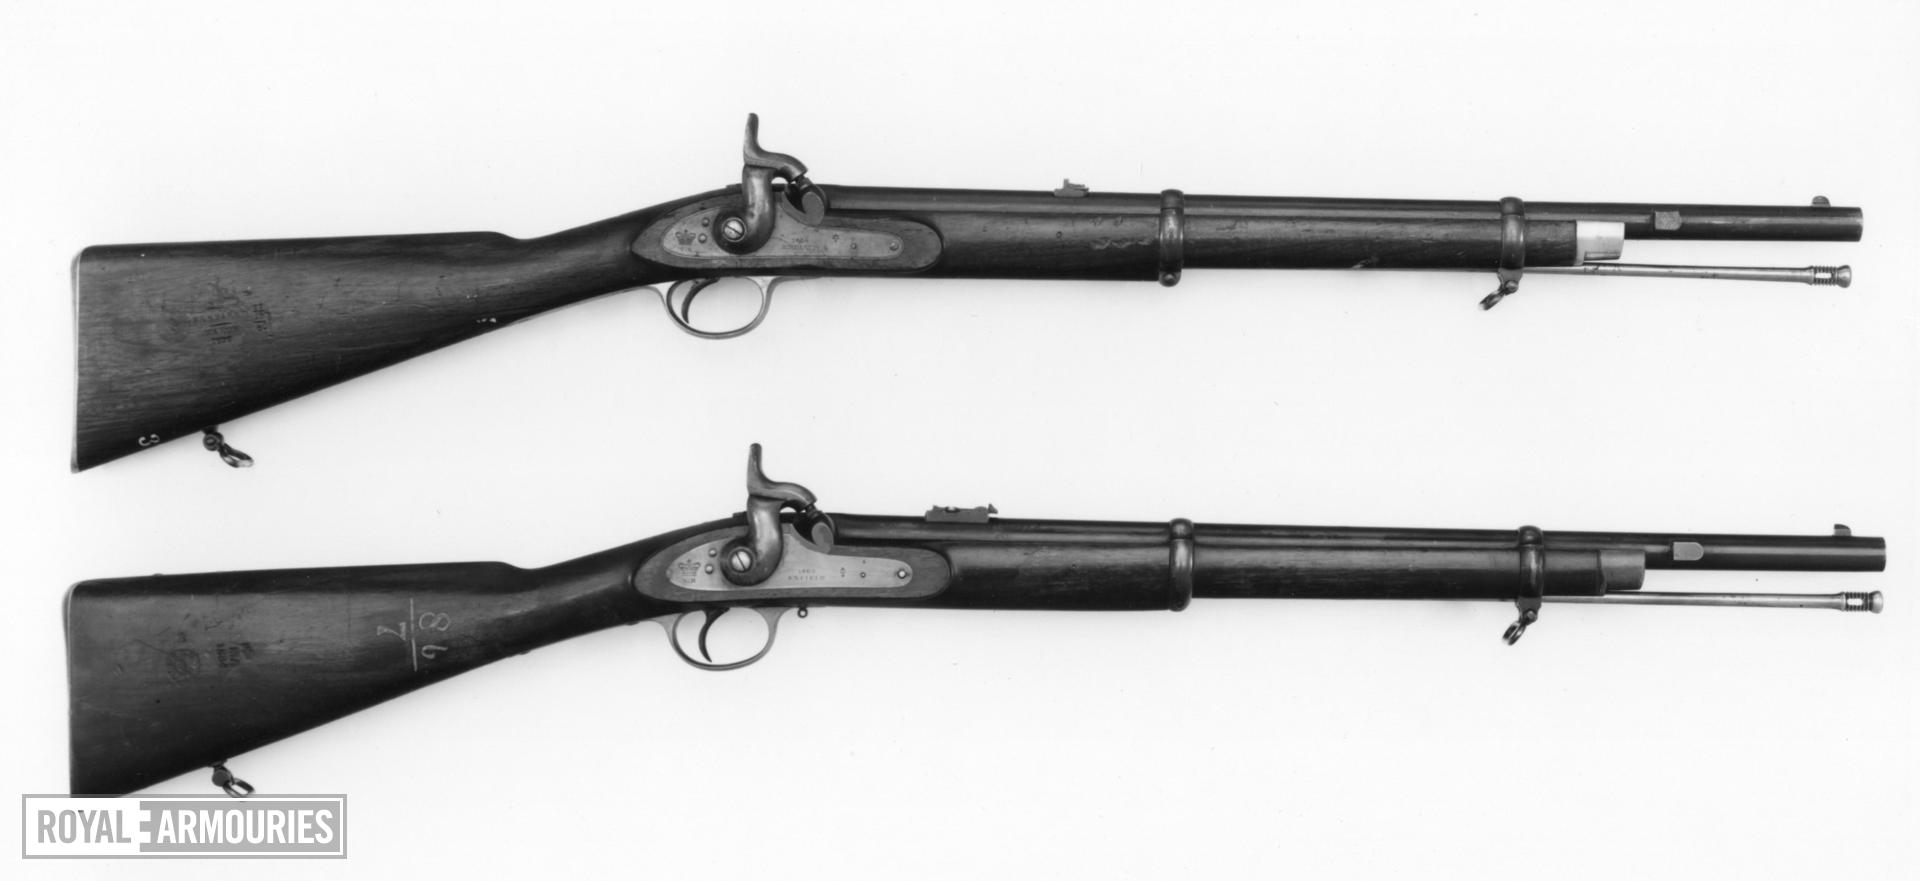 Percussion muzzle-loading military carbine - Pattern 1861 for Artillery,1st model, sealed pattern Artillery carbine, 1st model